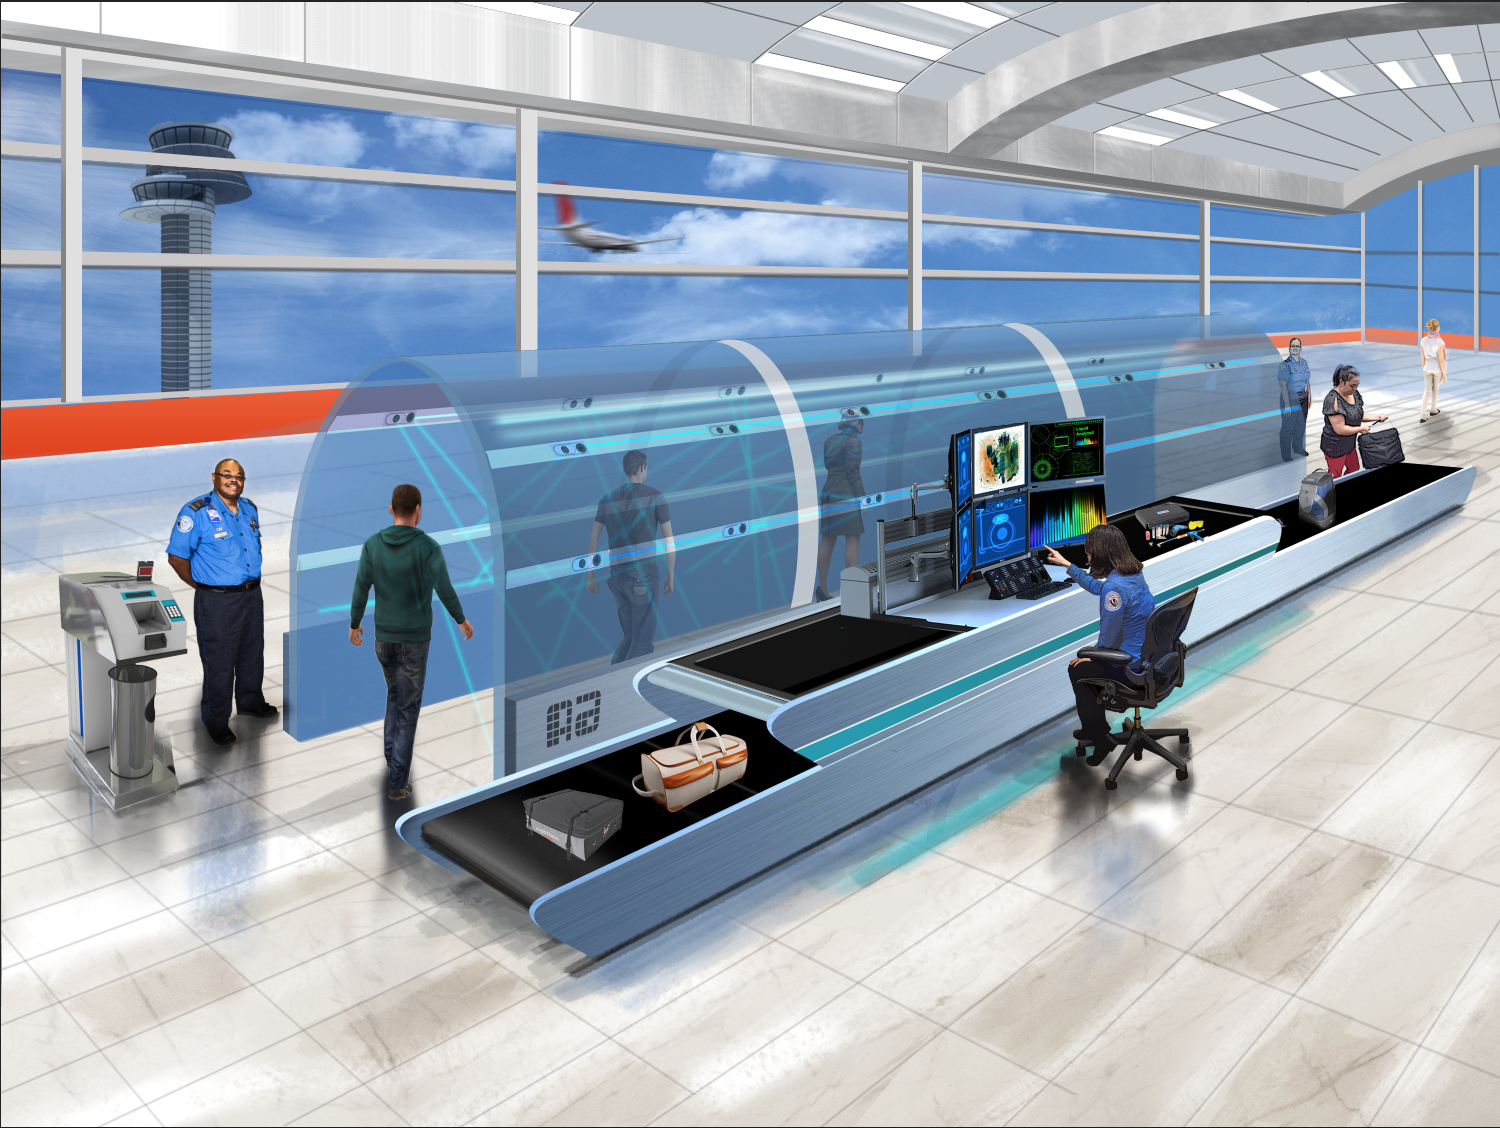 Graphic rendition of airport check point in the future.